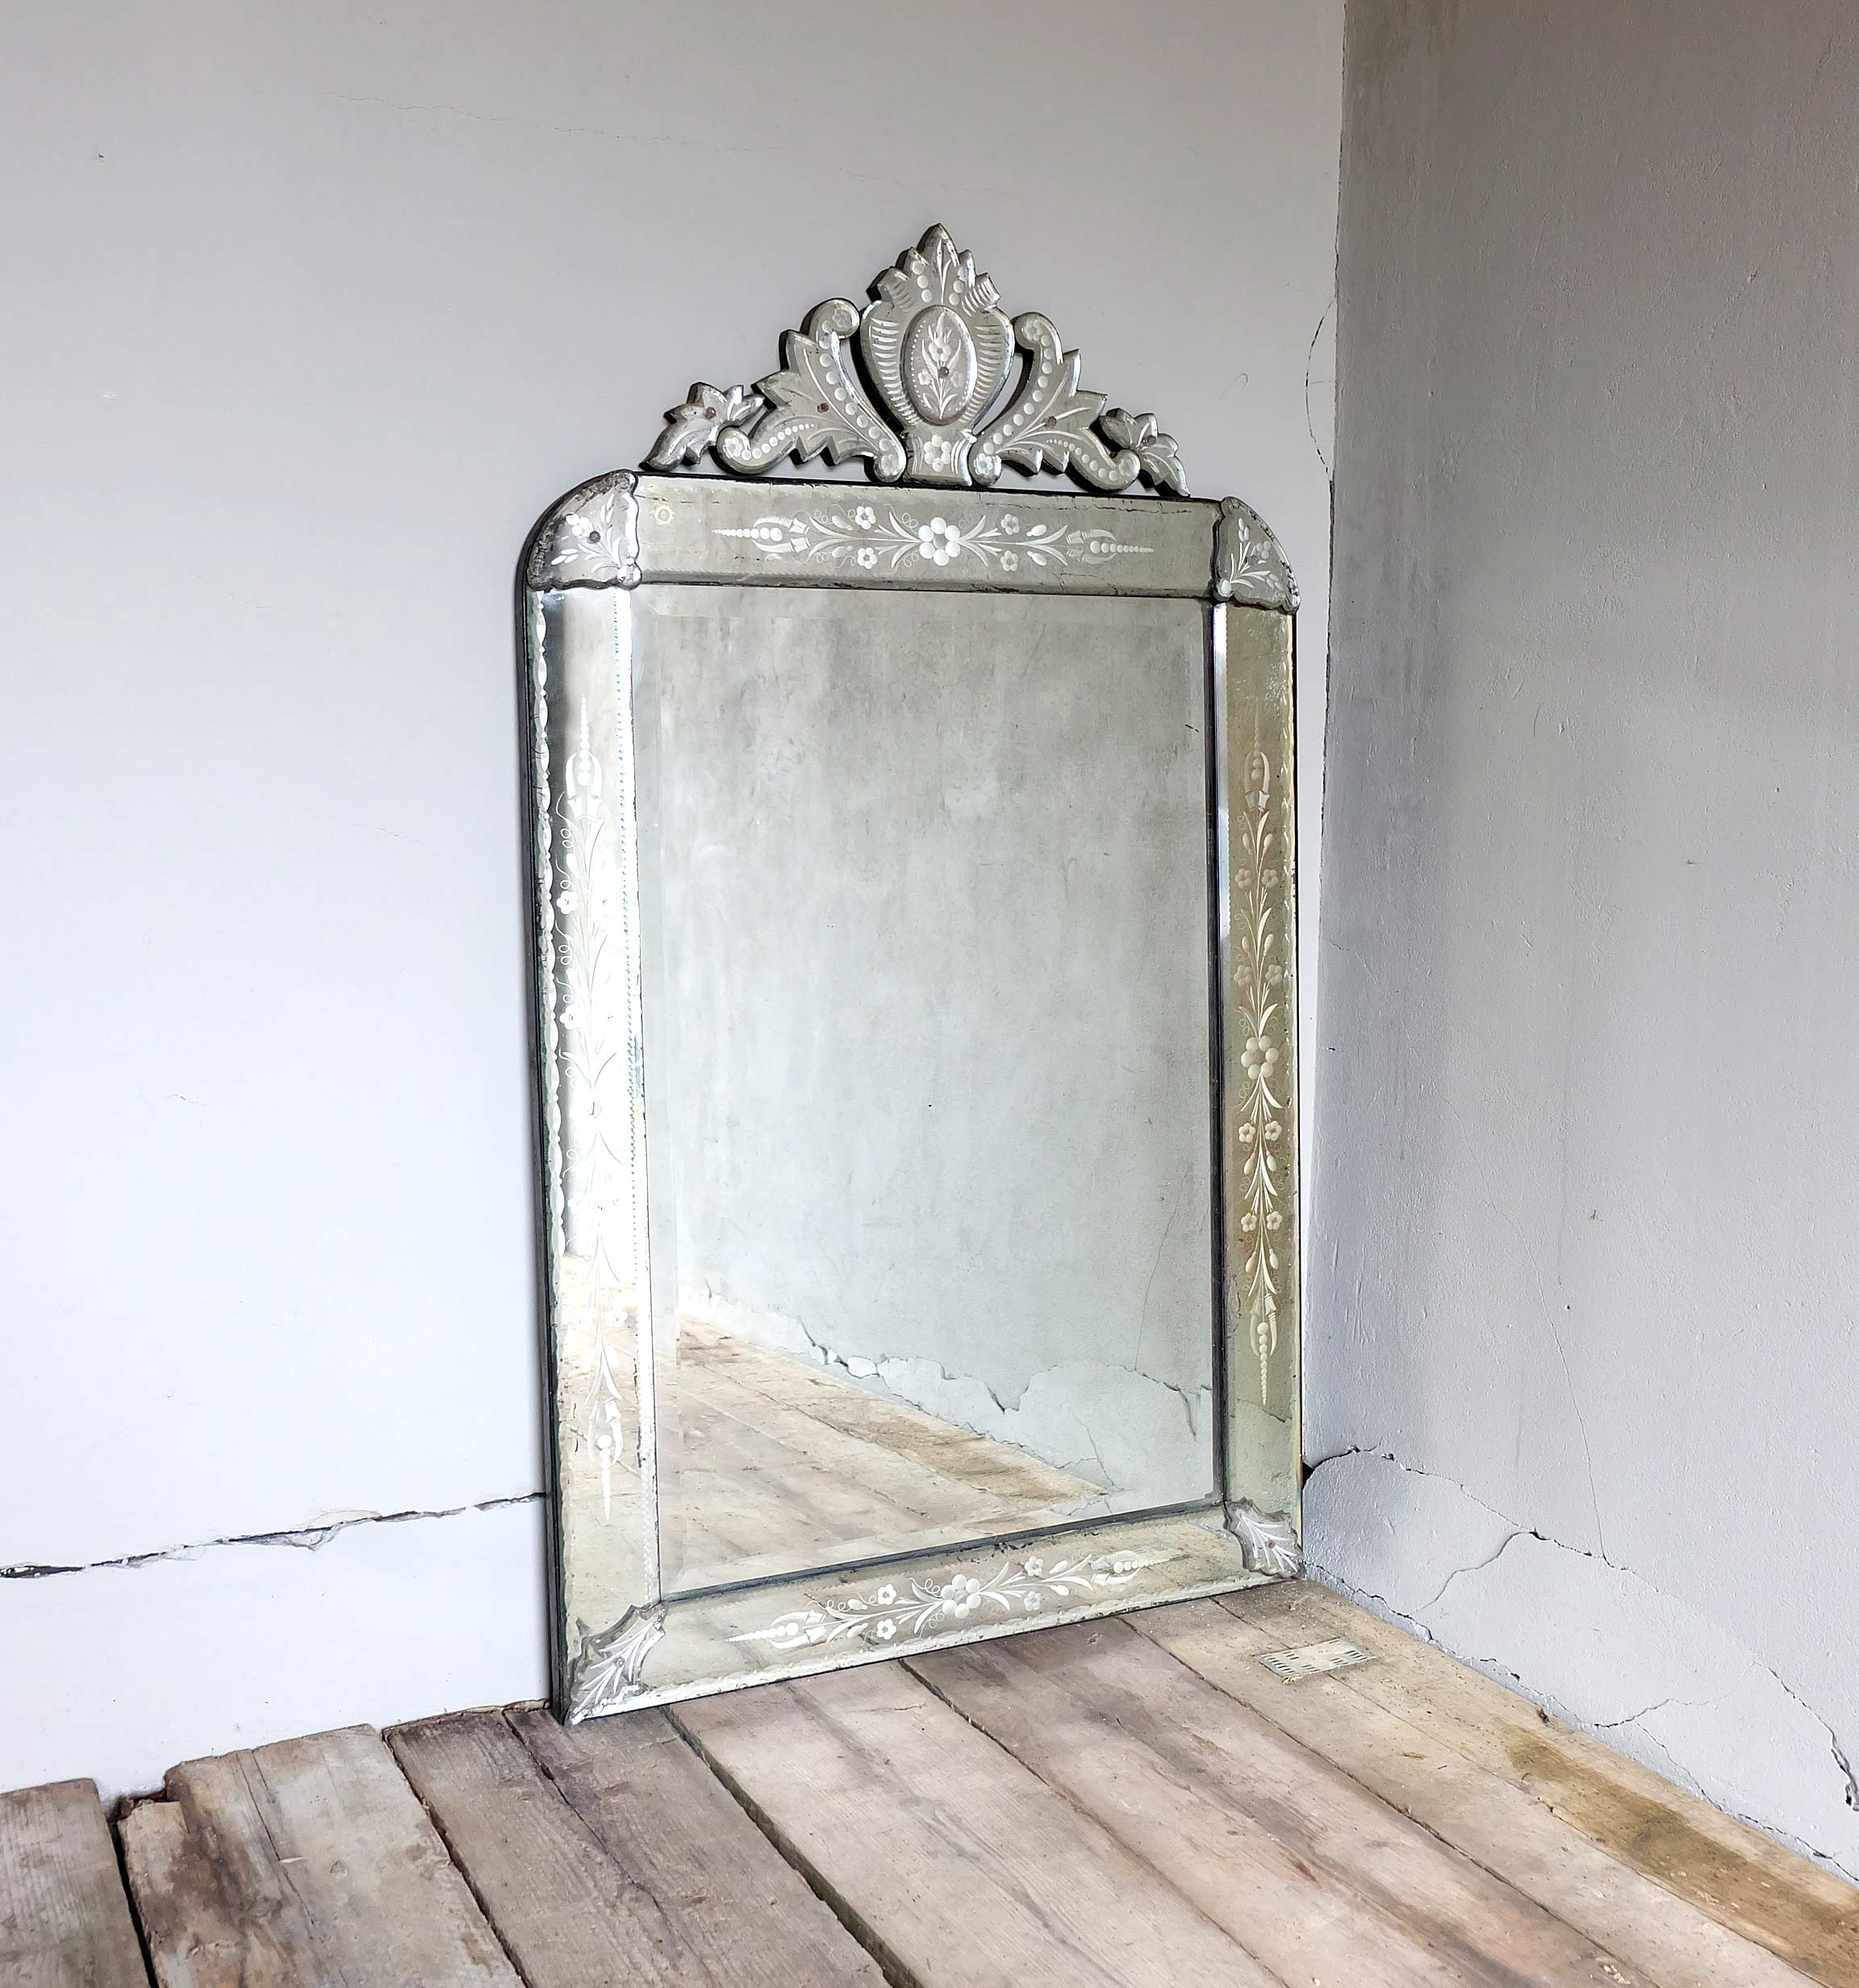 Antique Venetian Mirror Puckhaber Decorative Antiques With Antique Venetian Mirror (Image 7 of 15)